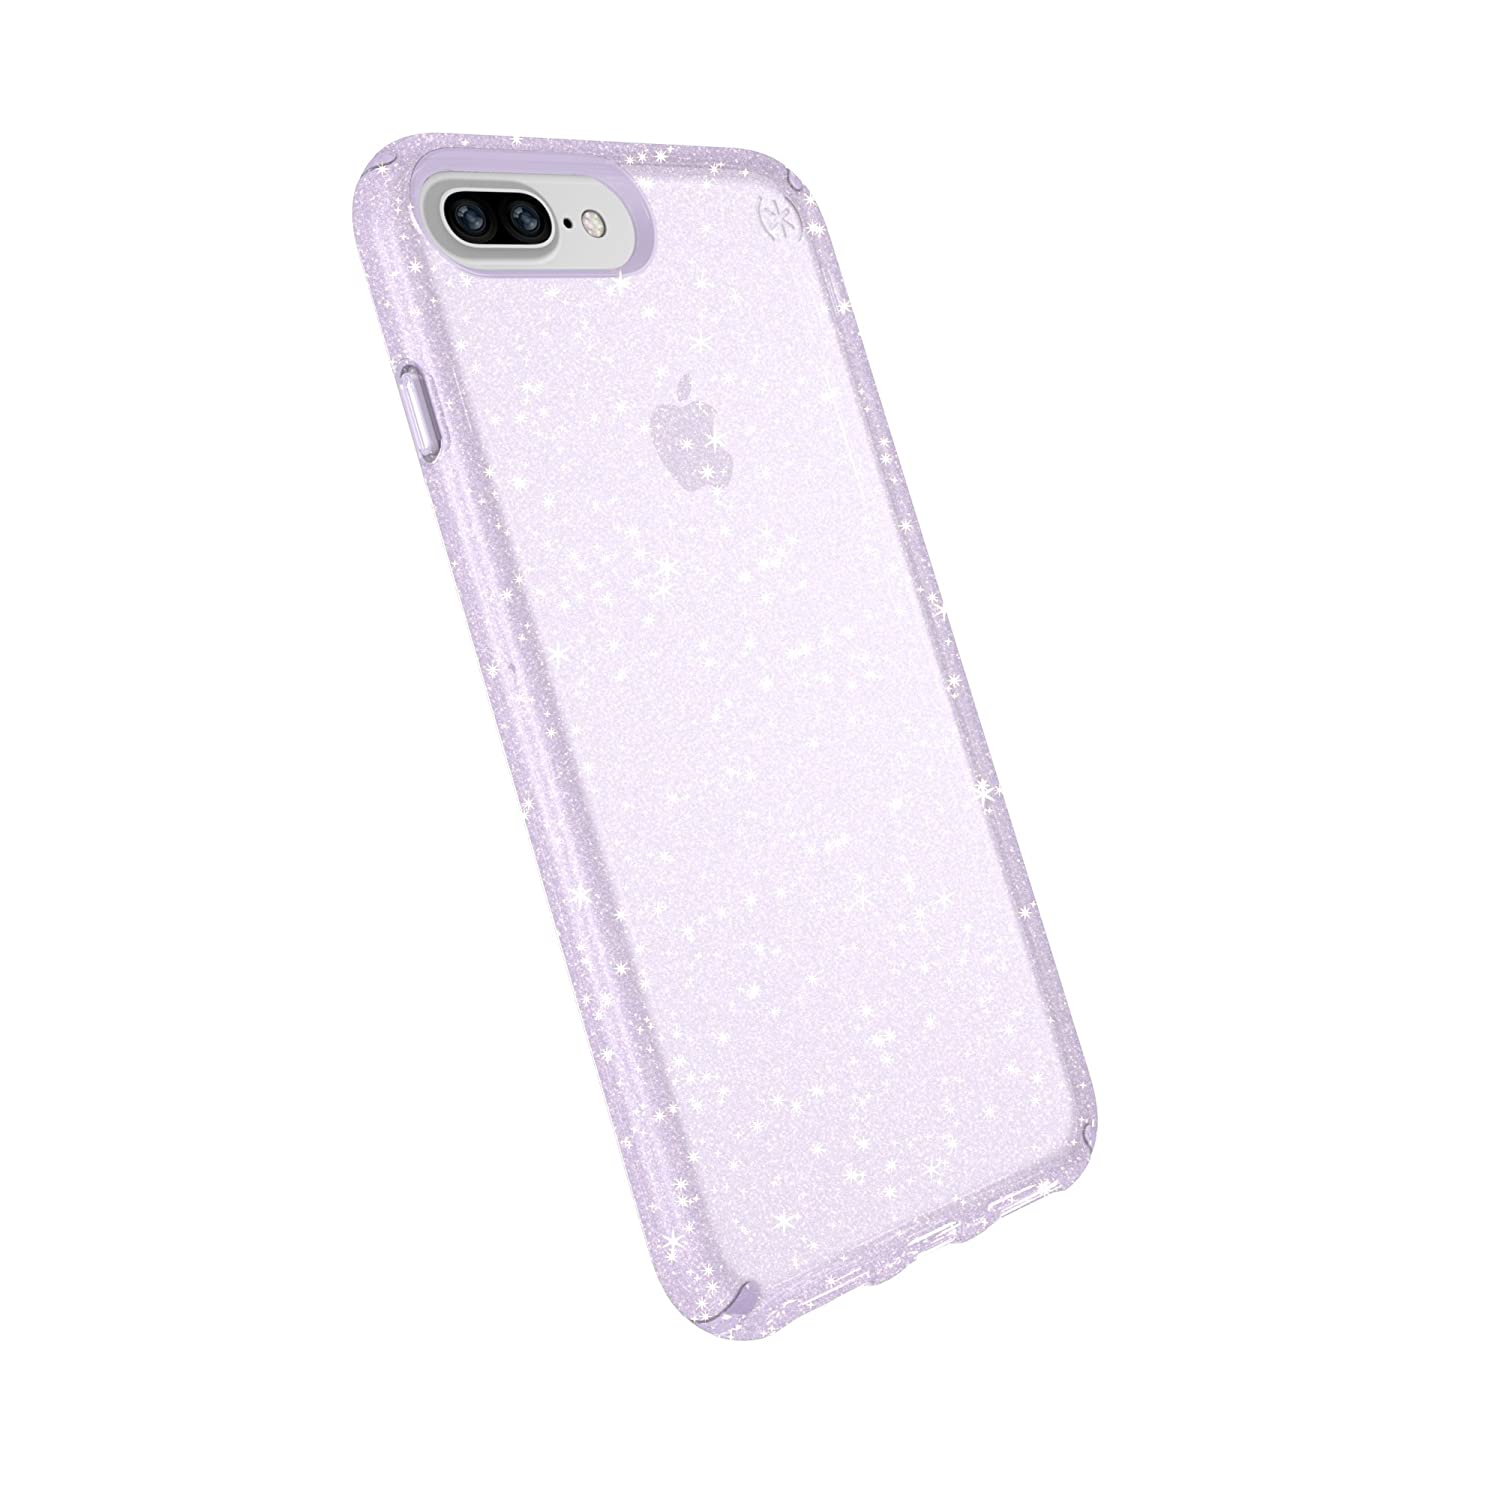 newest 44dec 9dc44 Speck Products Compatible Phone Case for Apple iPhone 8 Plus/iPhone 7  Plus/iPhone 6S Plus, Presidio Clear + Glitter Case, Geode Purple with Gold  ...